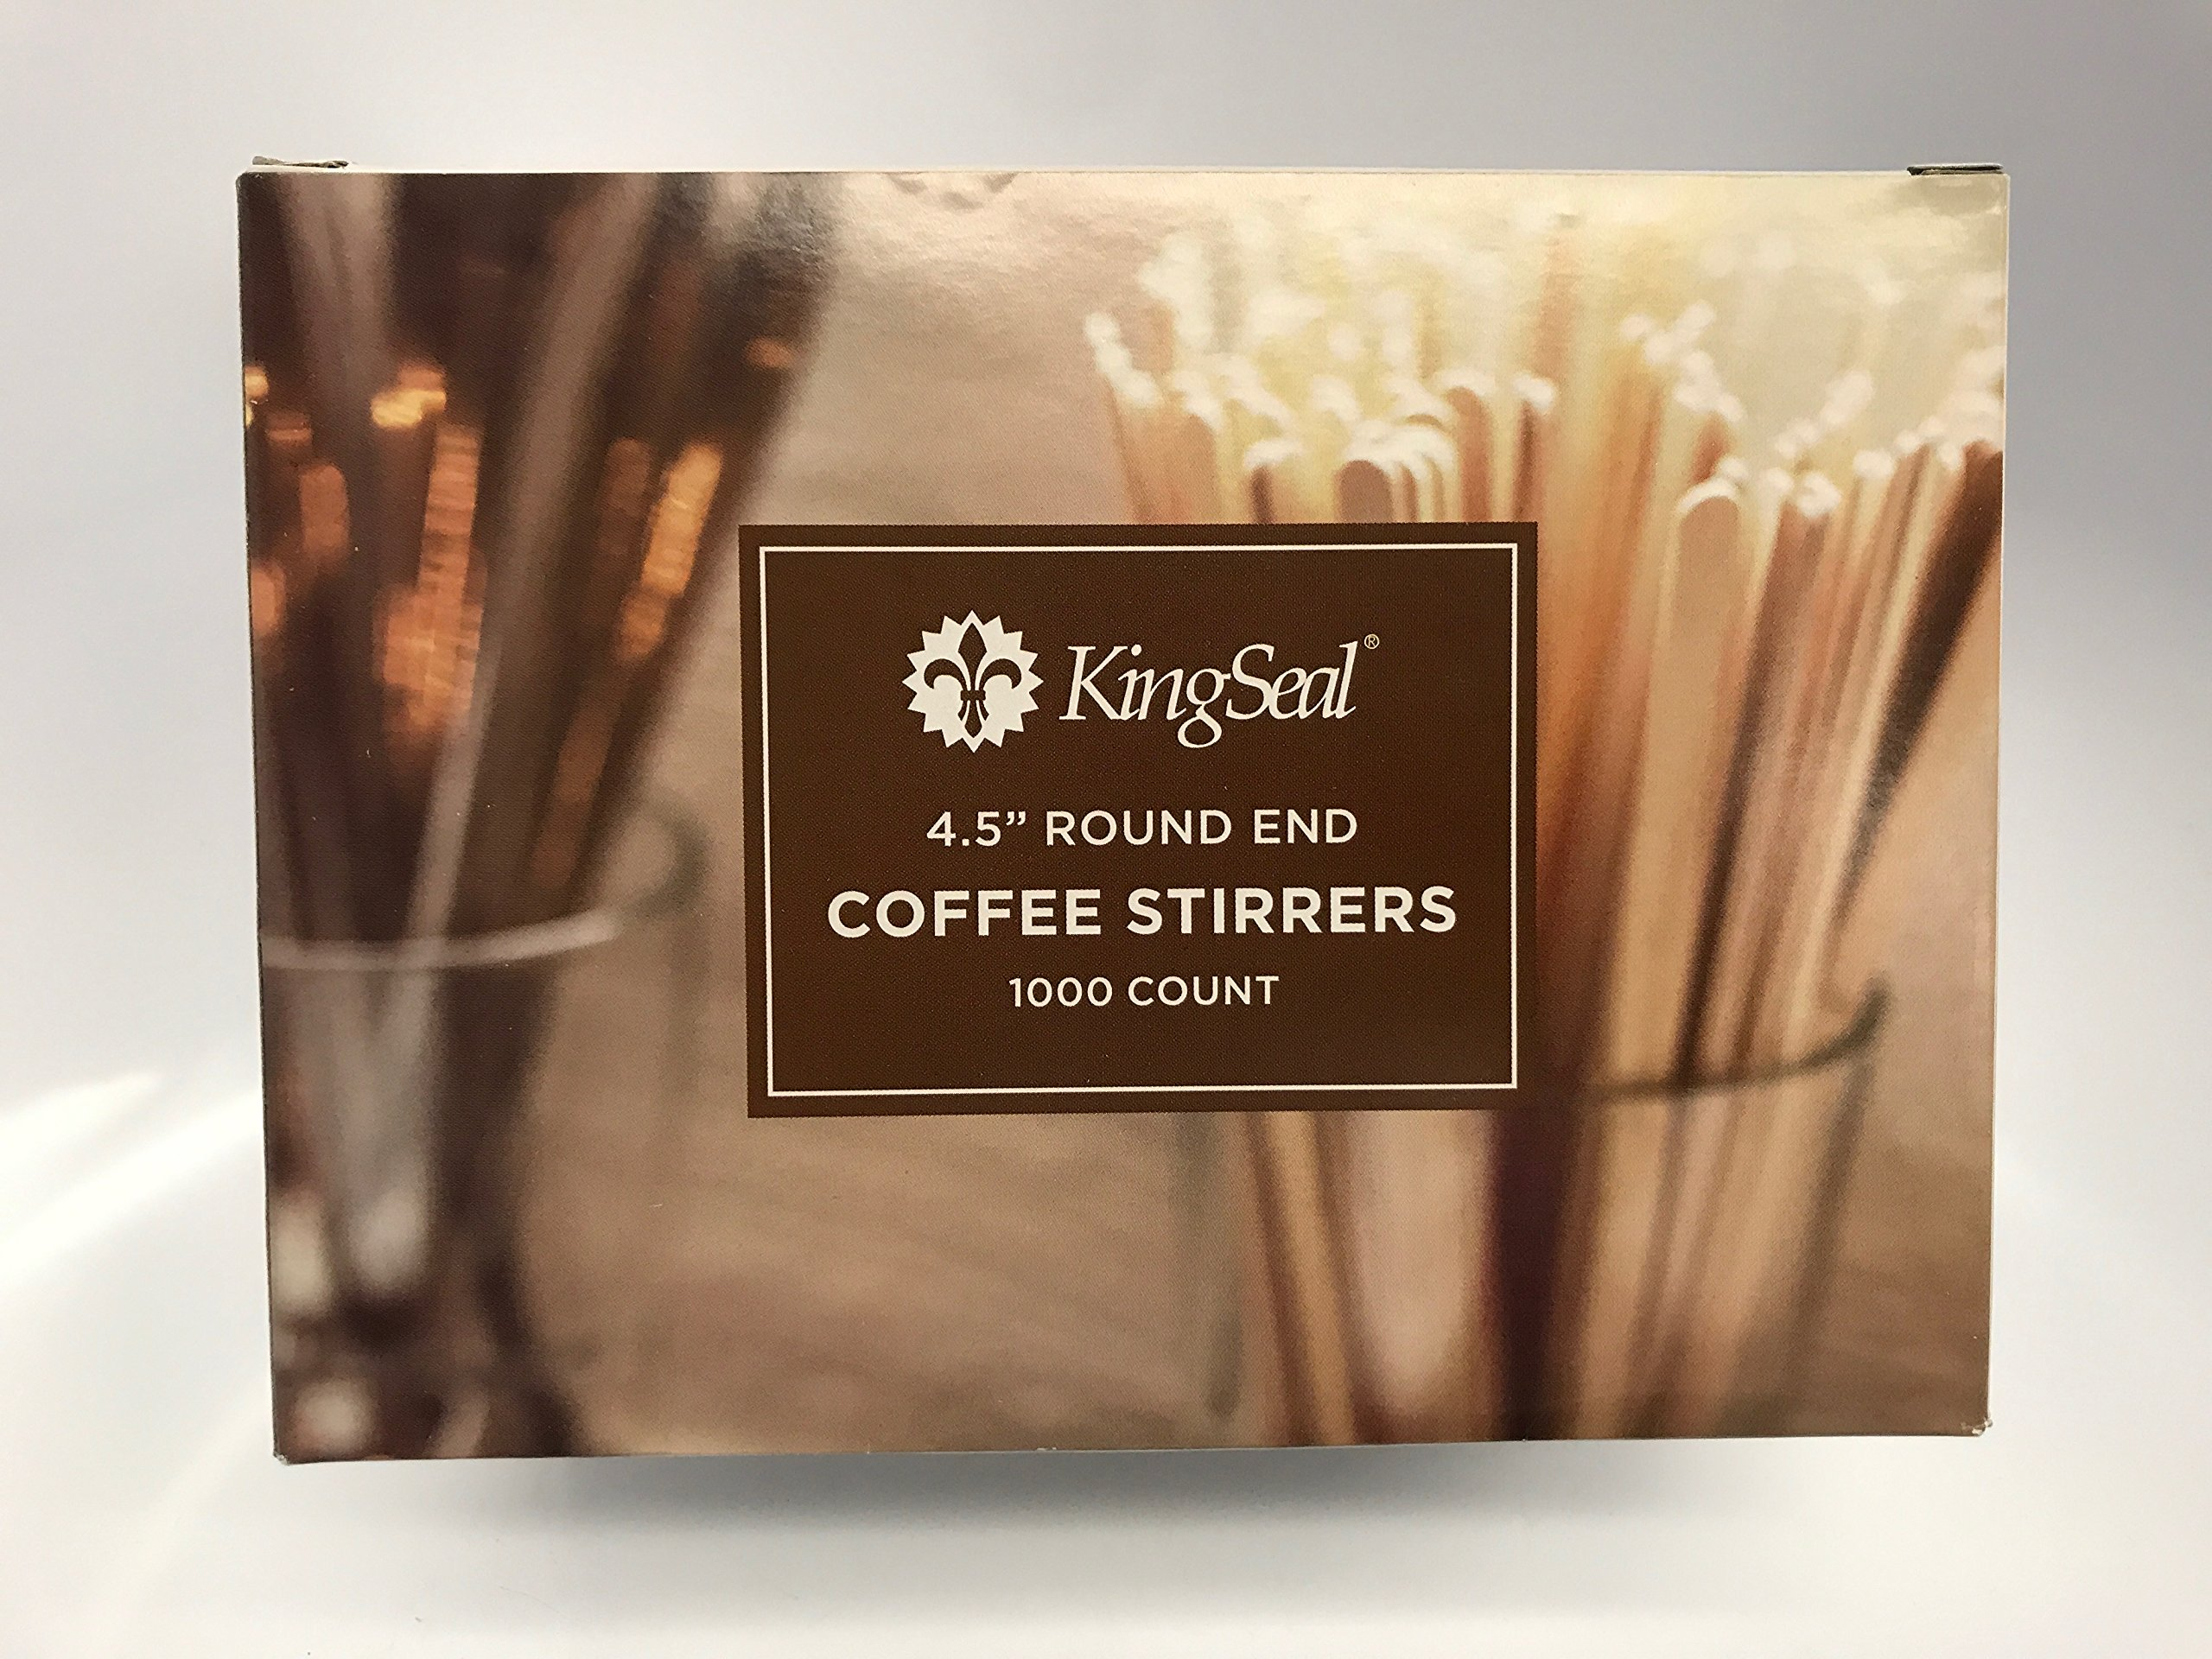 KingSeal Wood Coffee Beverage Stirrers, Craft Sticks, Round End - 4.5 Inches, 2 Pack/1000 per Pack